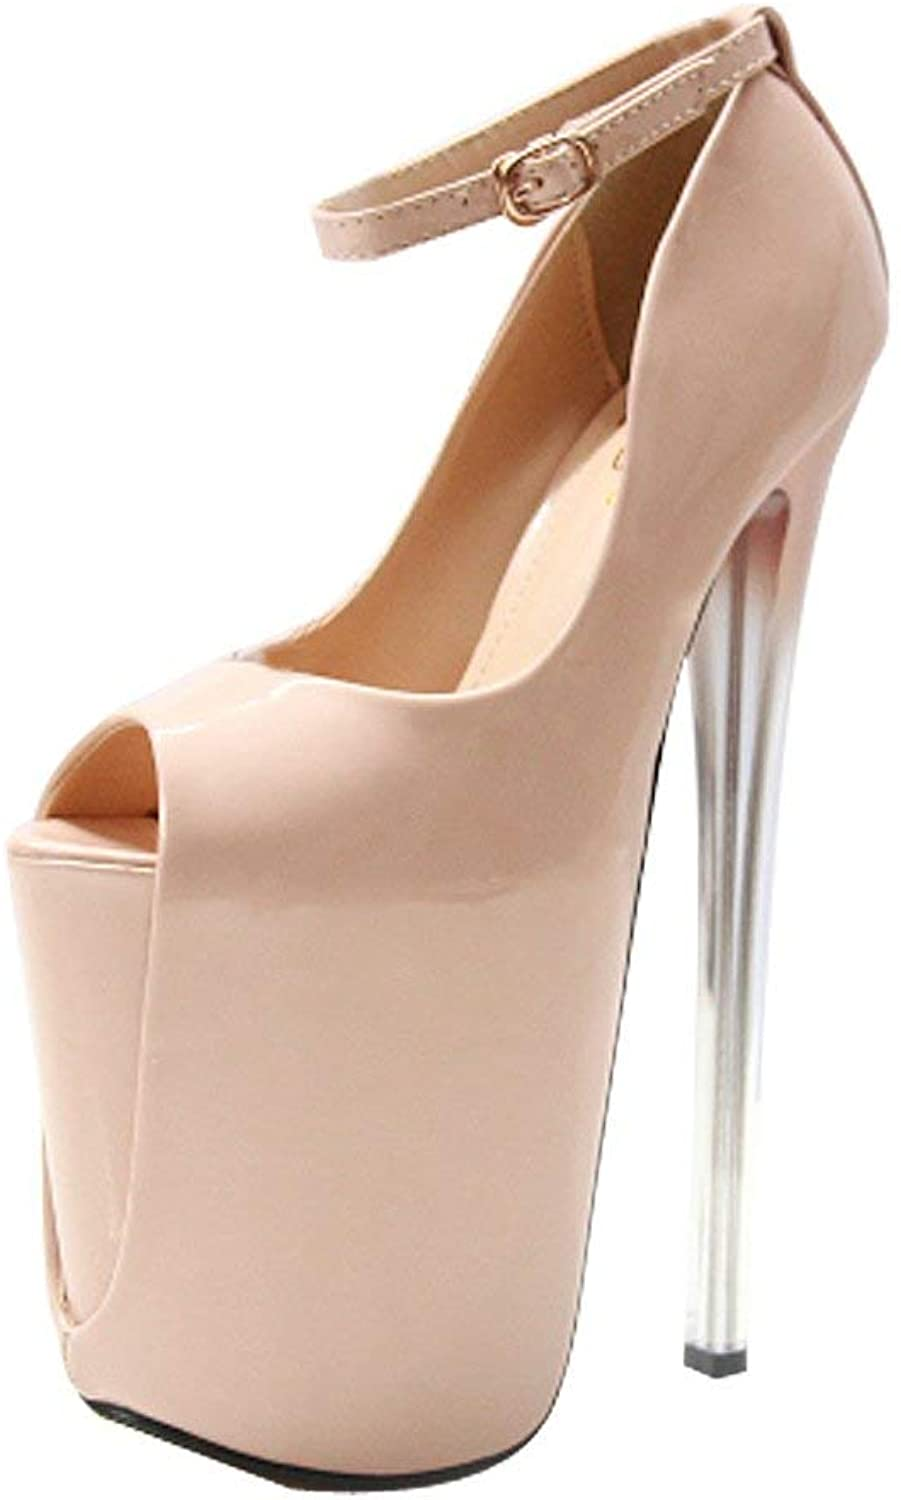 Cici shoes Wedding Evening Party shoes Comfortable Mid Heels Pumps with Bow Knot Ankle Strap Wide Width Satin shoes